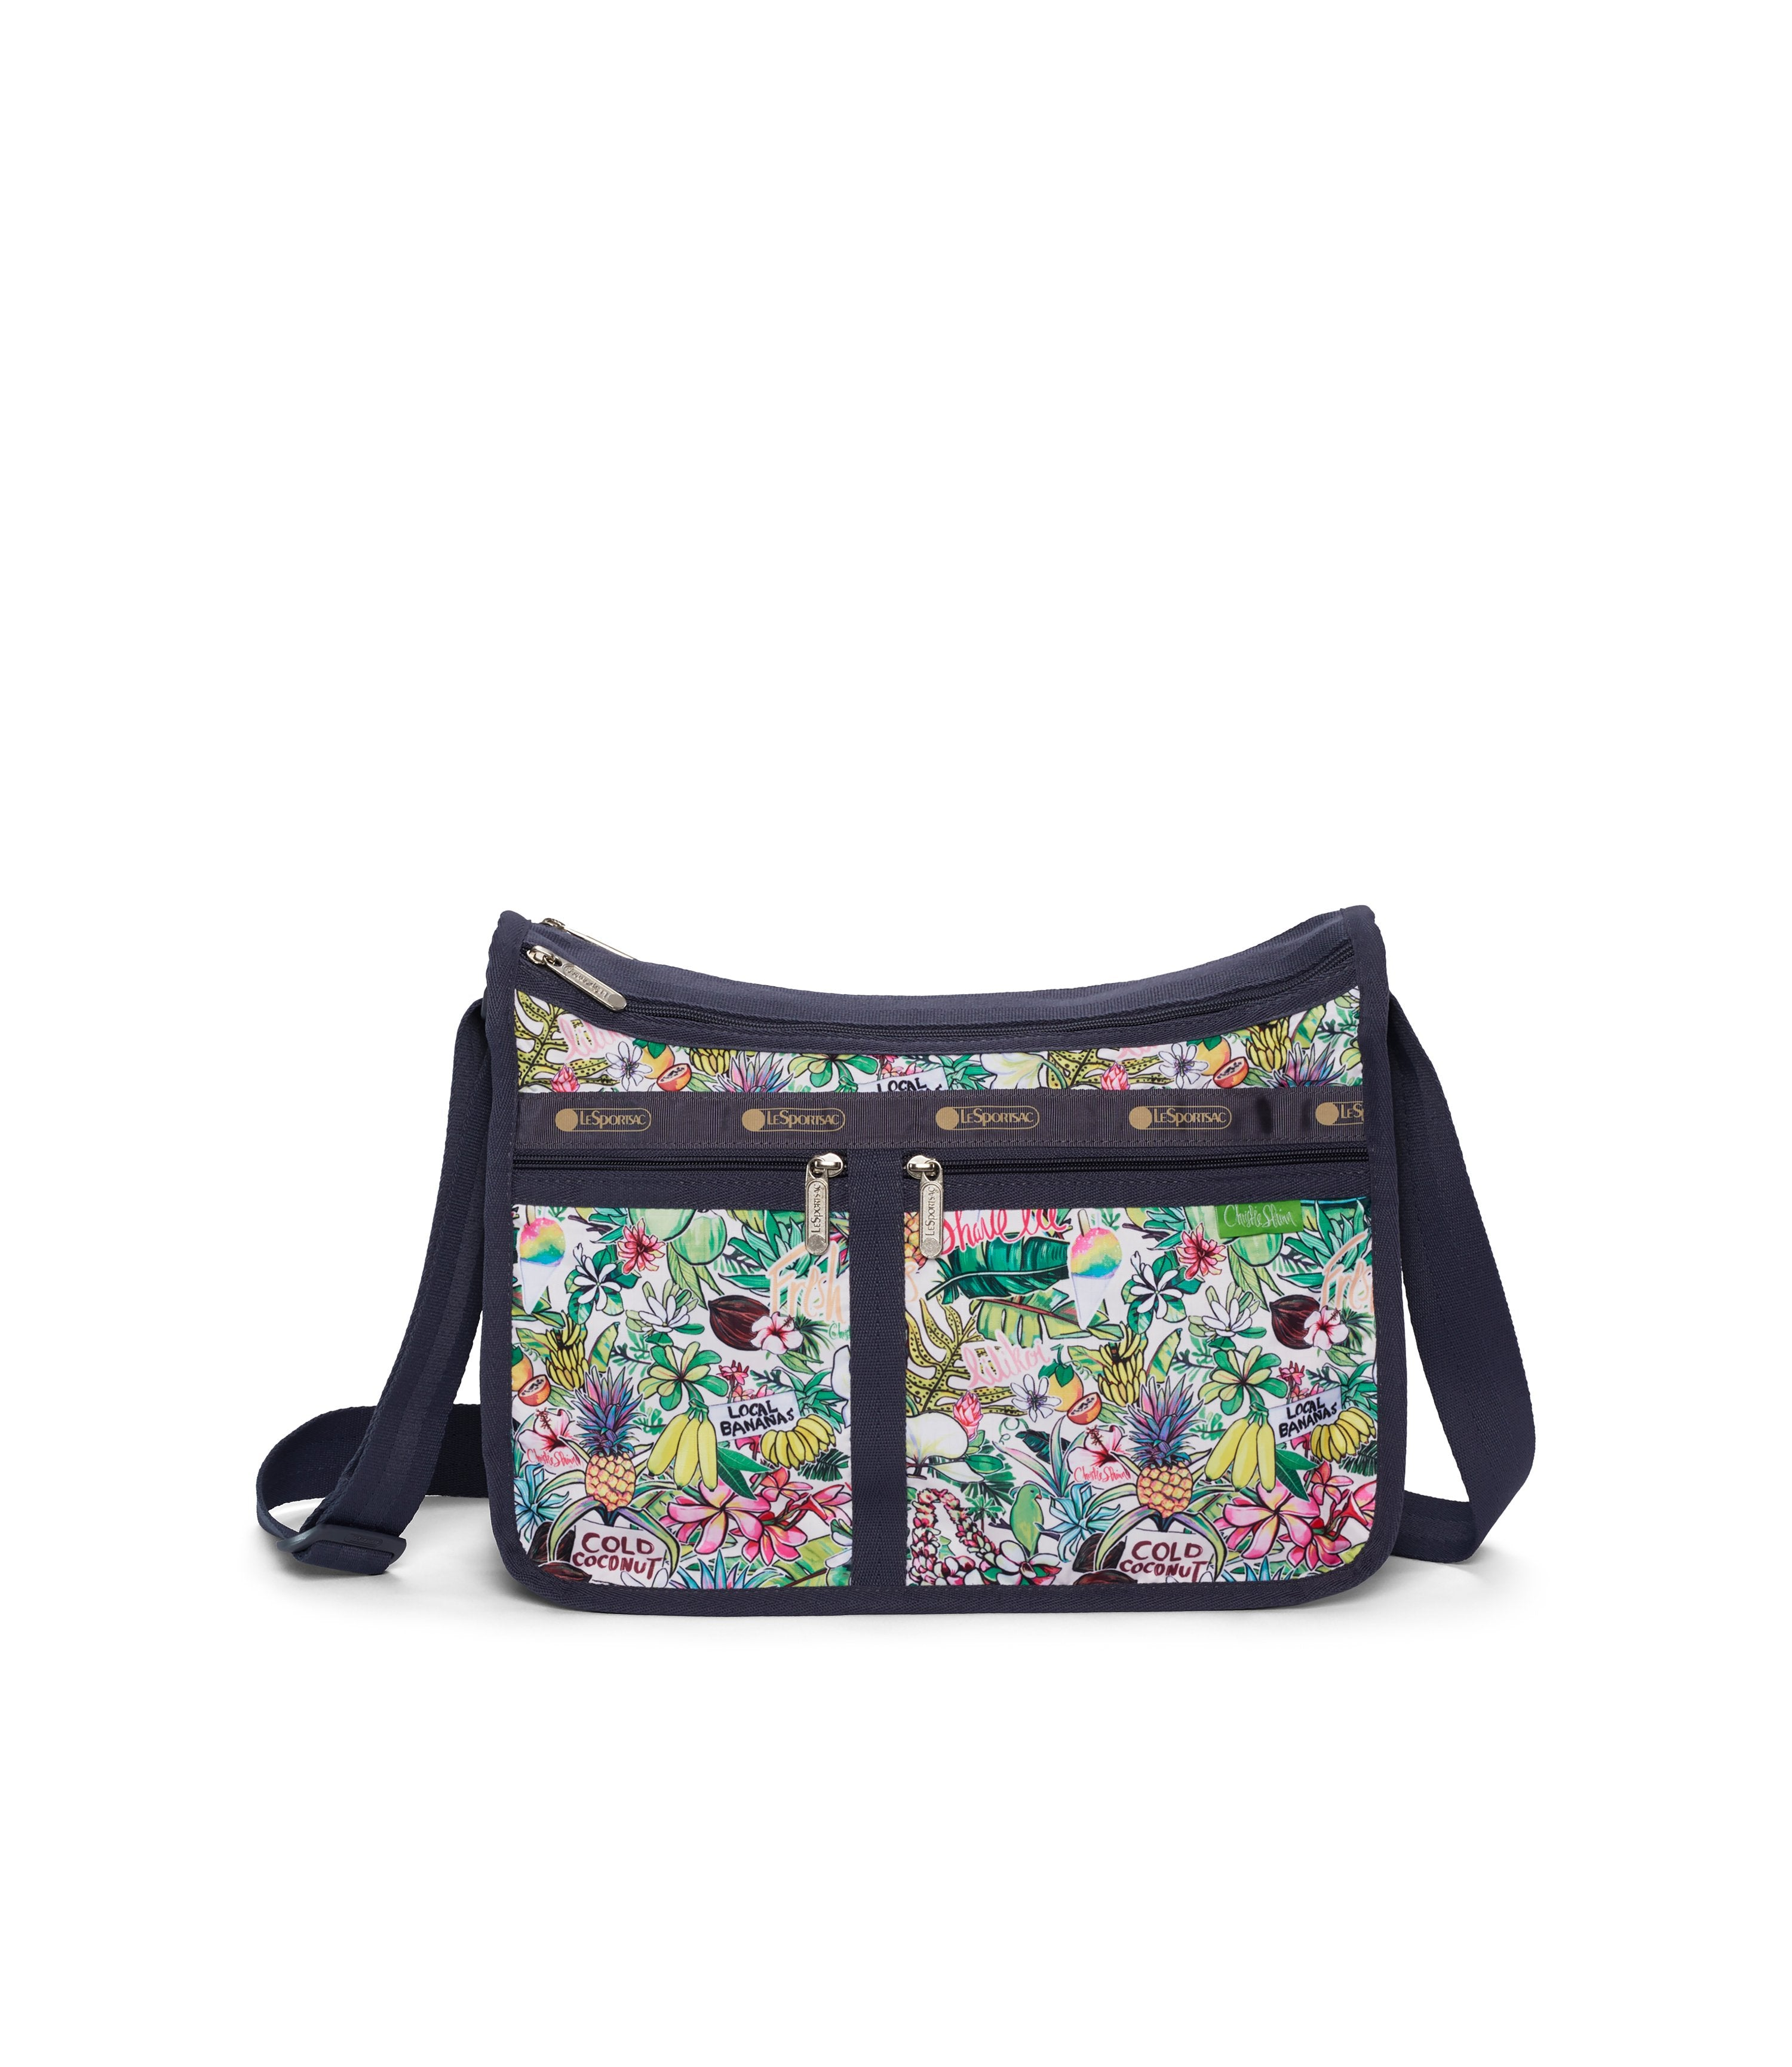 LeSportsac - Deluxe Everyday Bag - Handbags - Hawaii - Exclusive! Aloha Market print - Front View